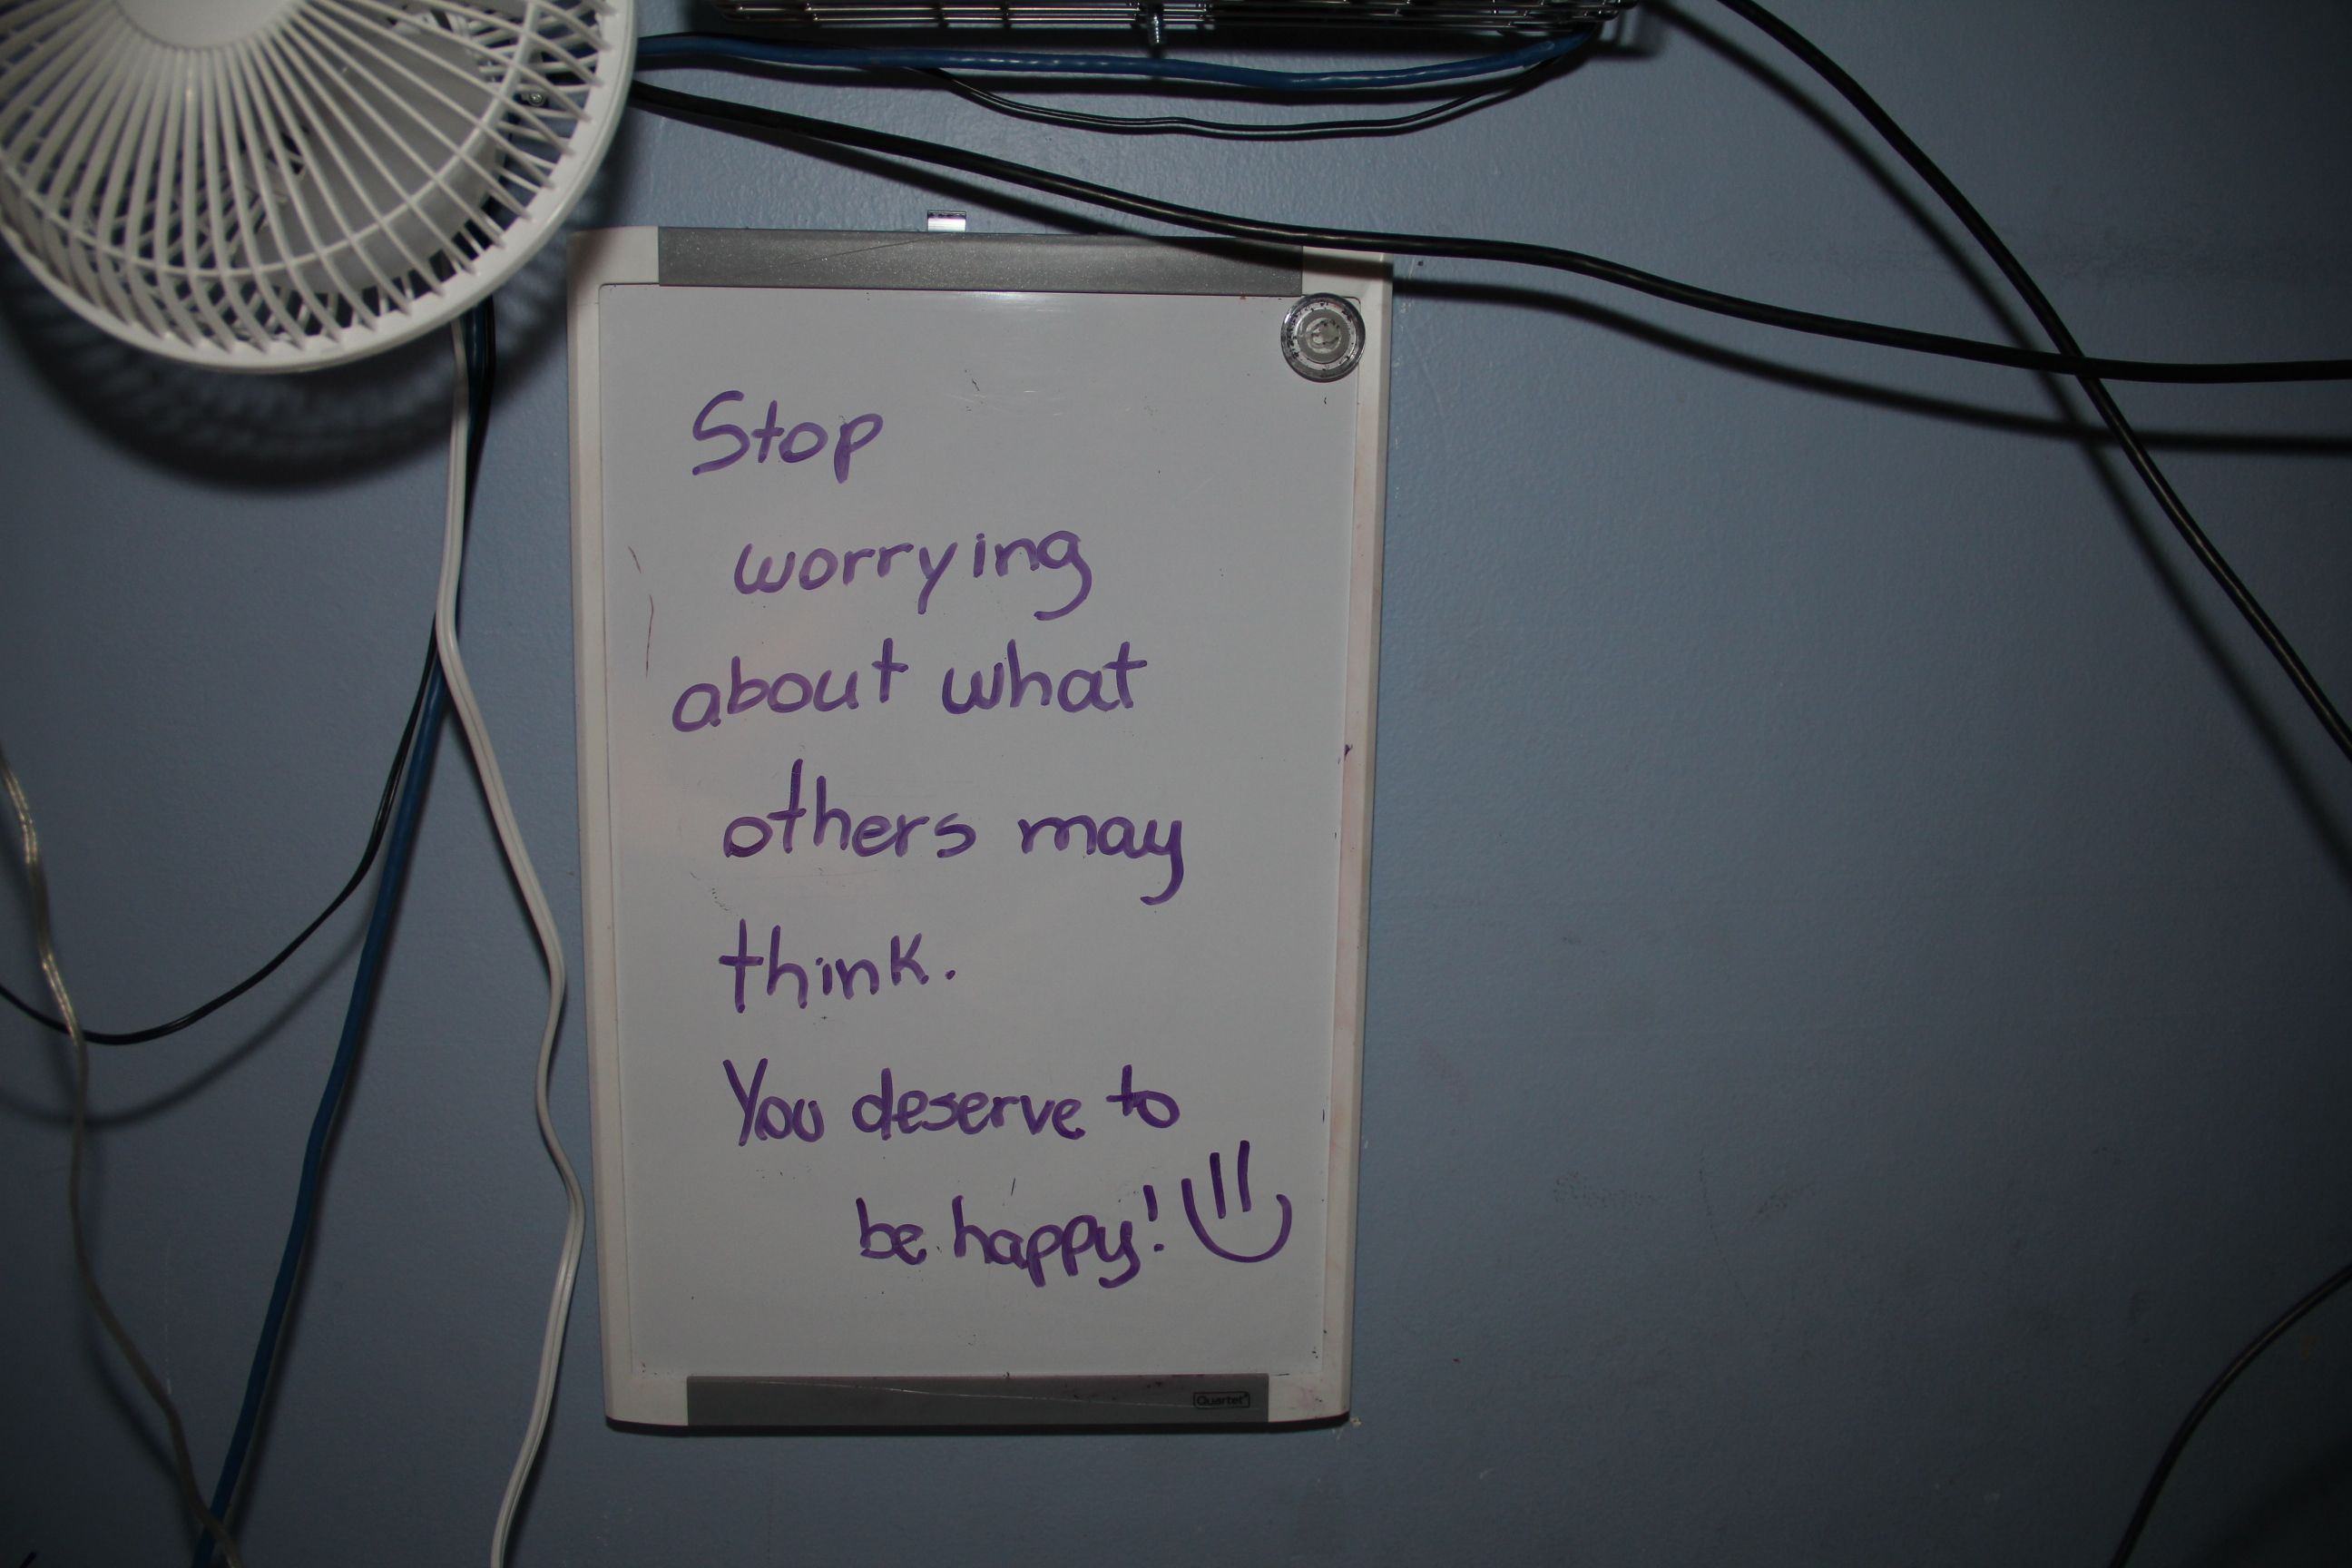 """"""" Stop worrying about what others may think. You deserve to be happy! """""""